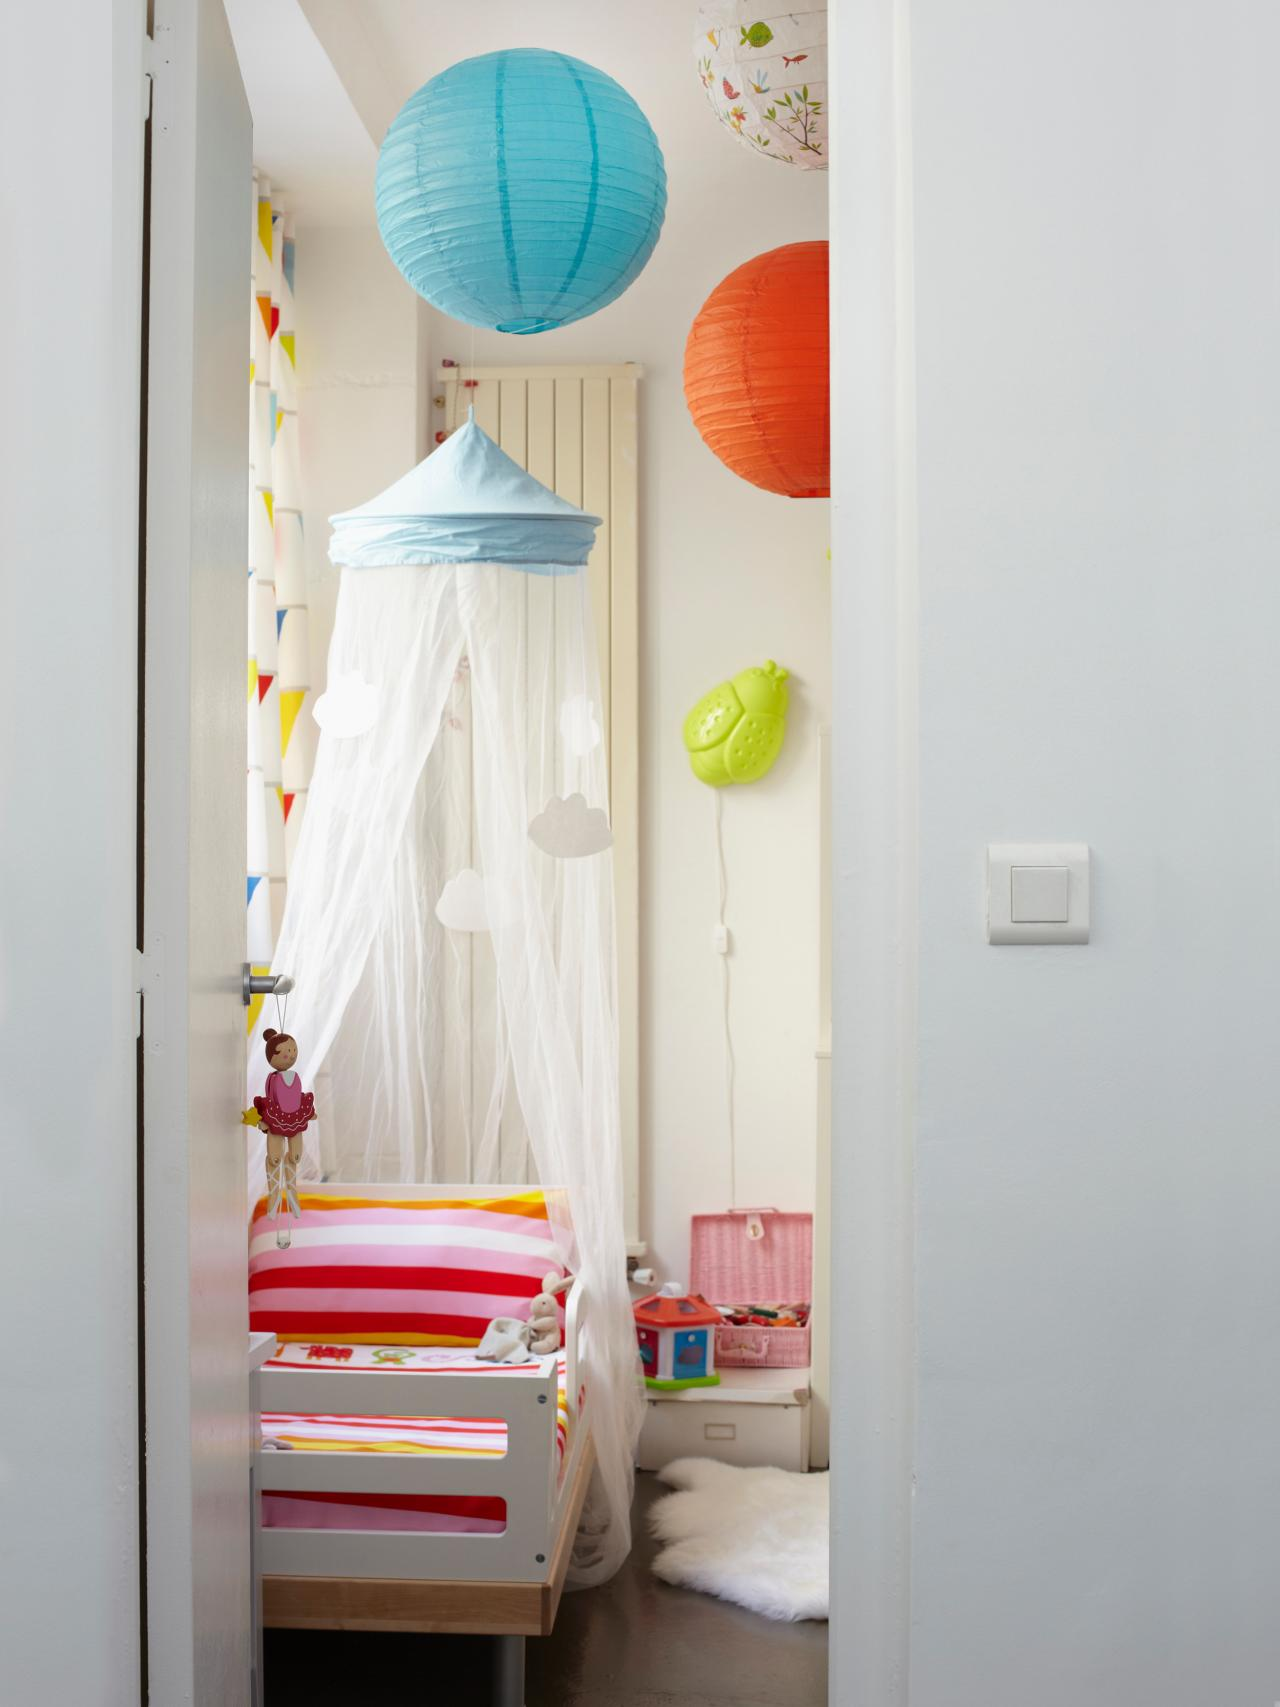 Ikea_live Whimsical Kids Room